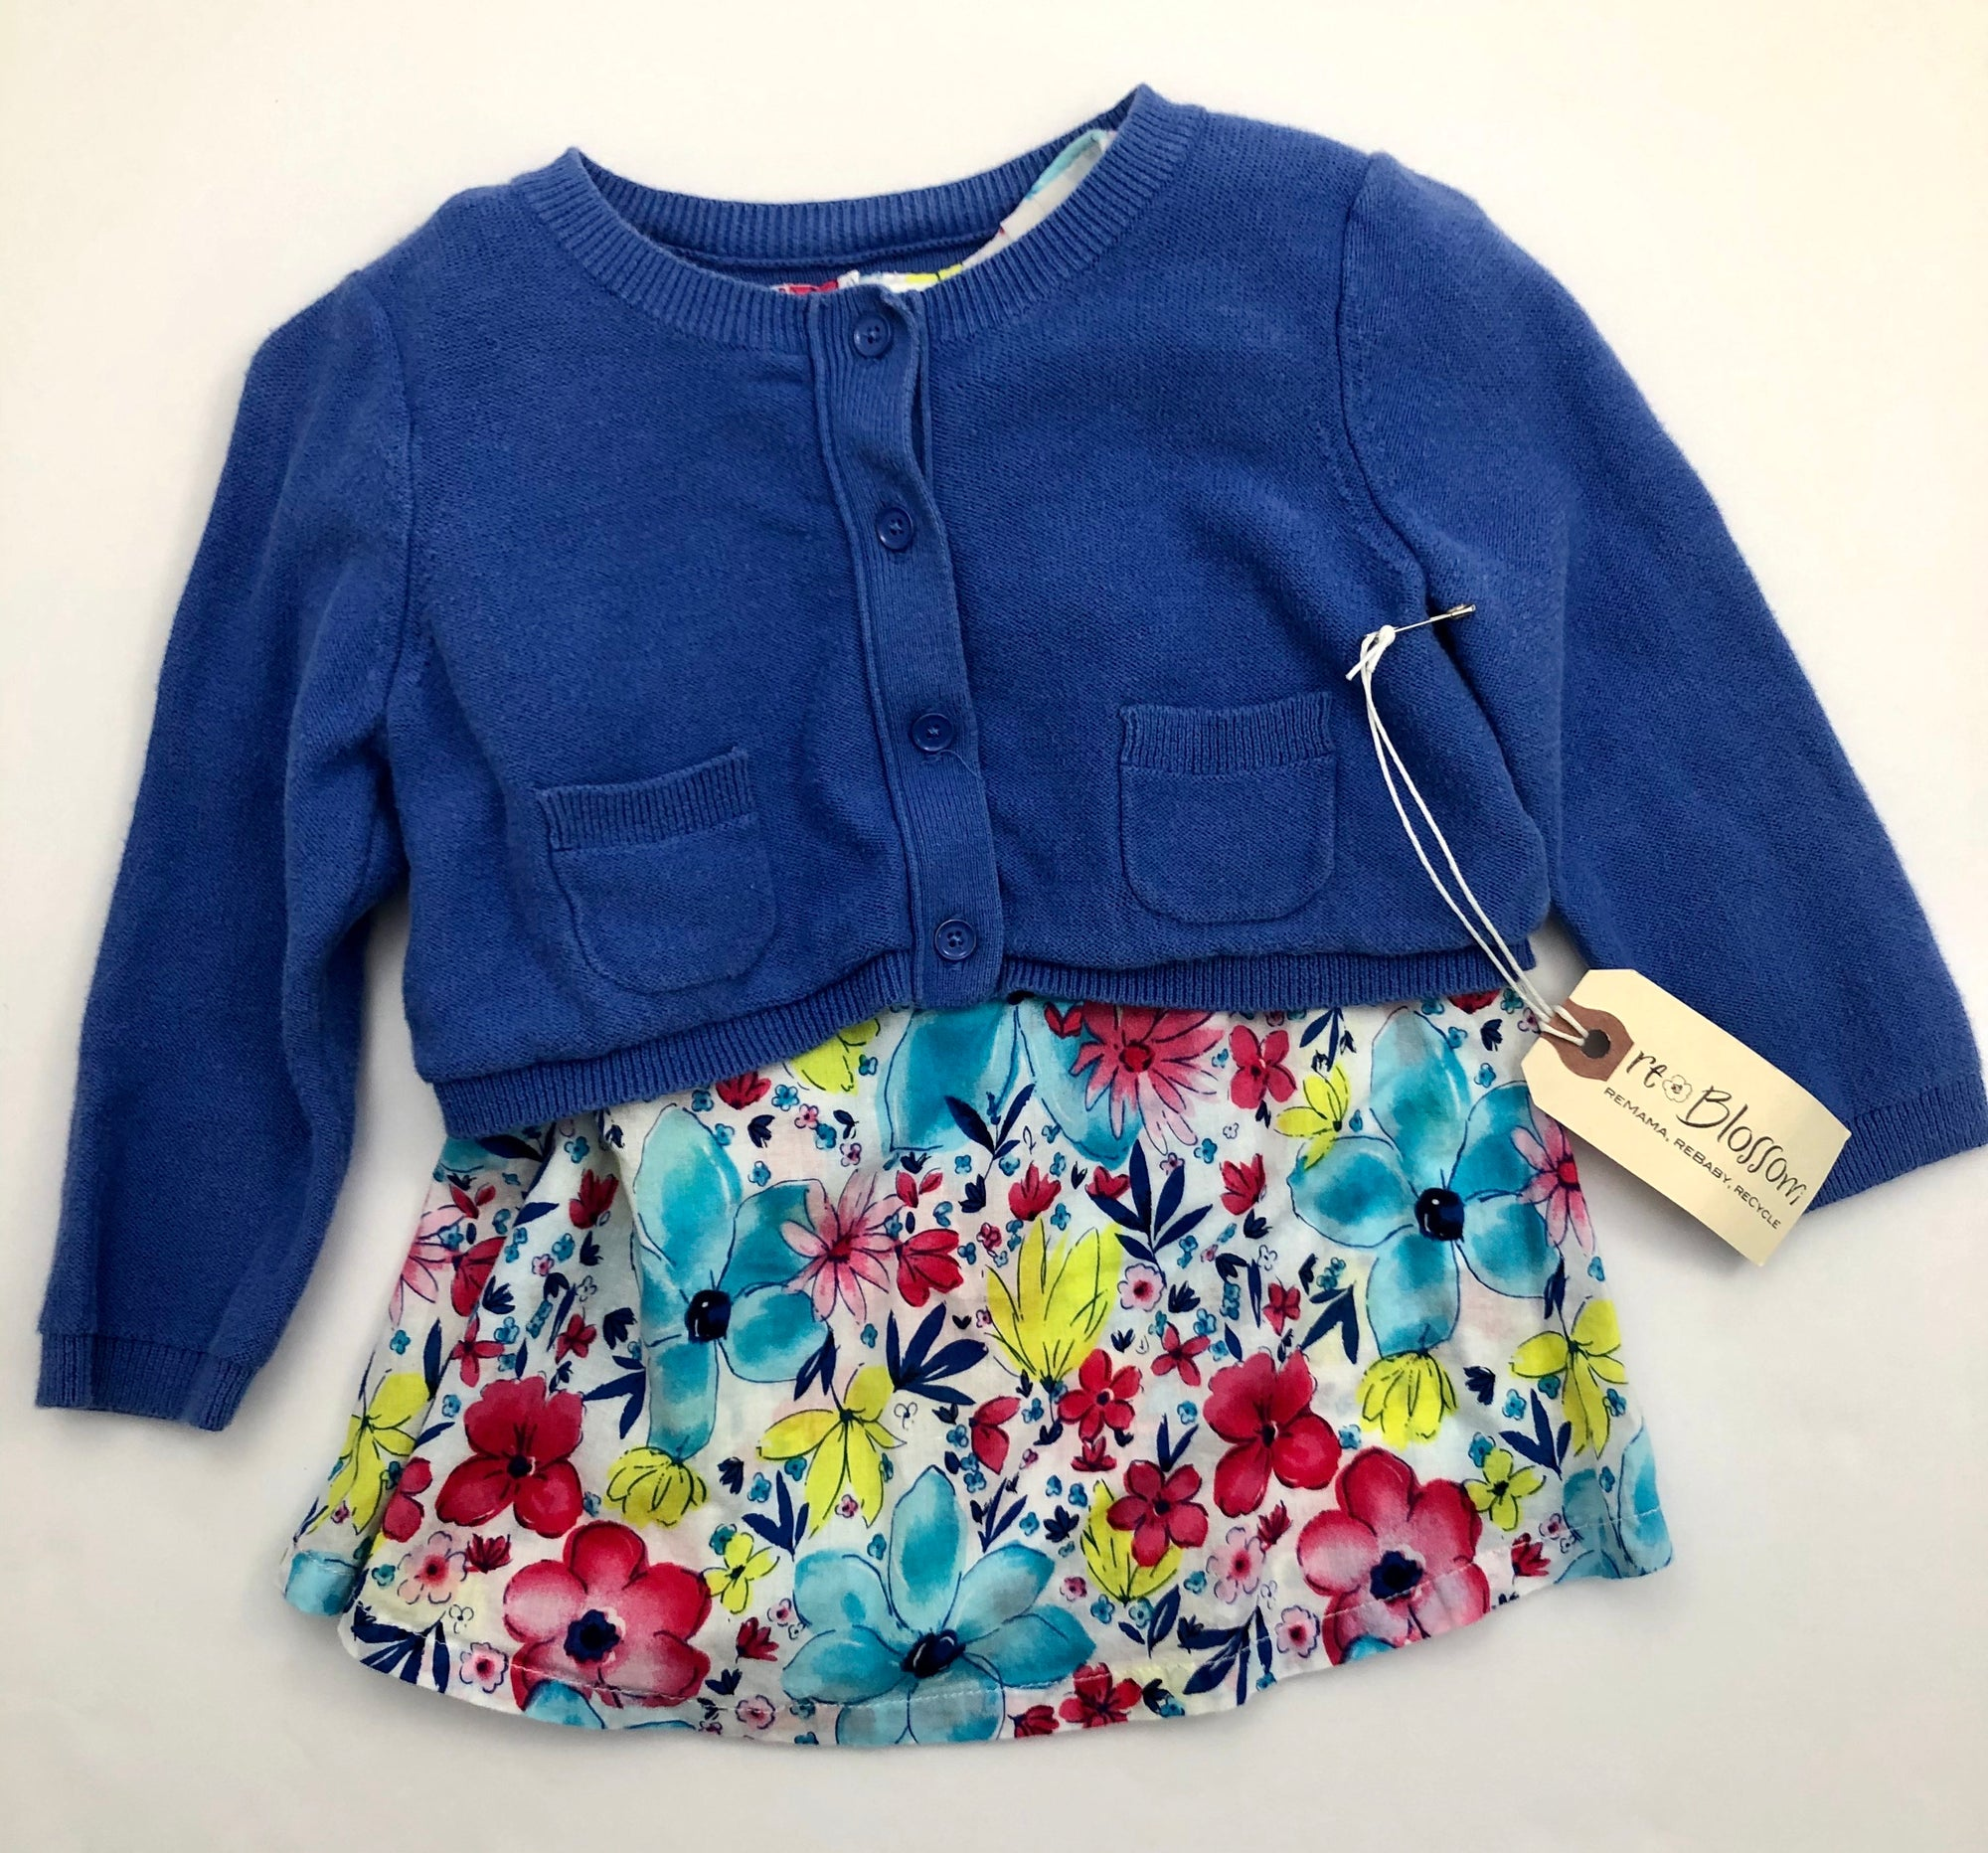 Resale 6-12 m Gap Periwinkle Cardigan & 6-9 m First Impressions Floral Dress Set